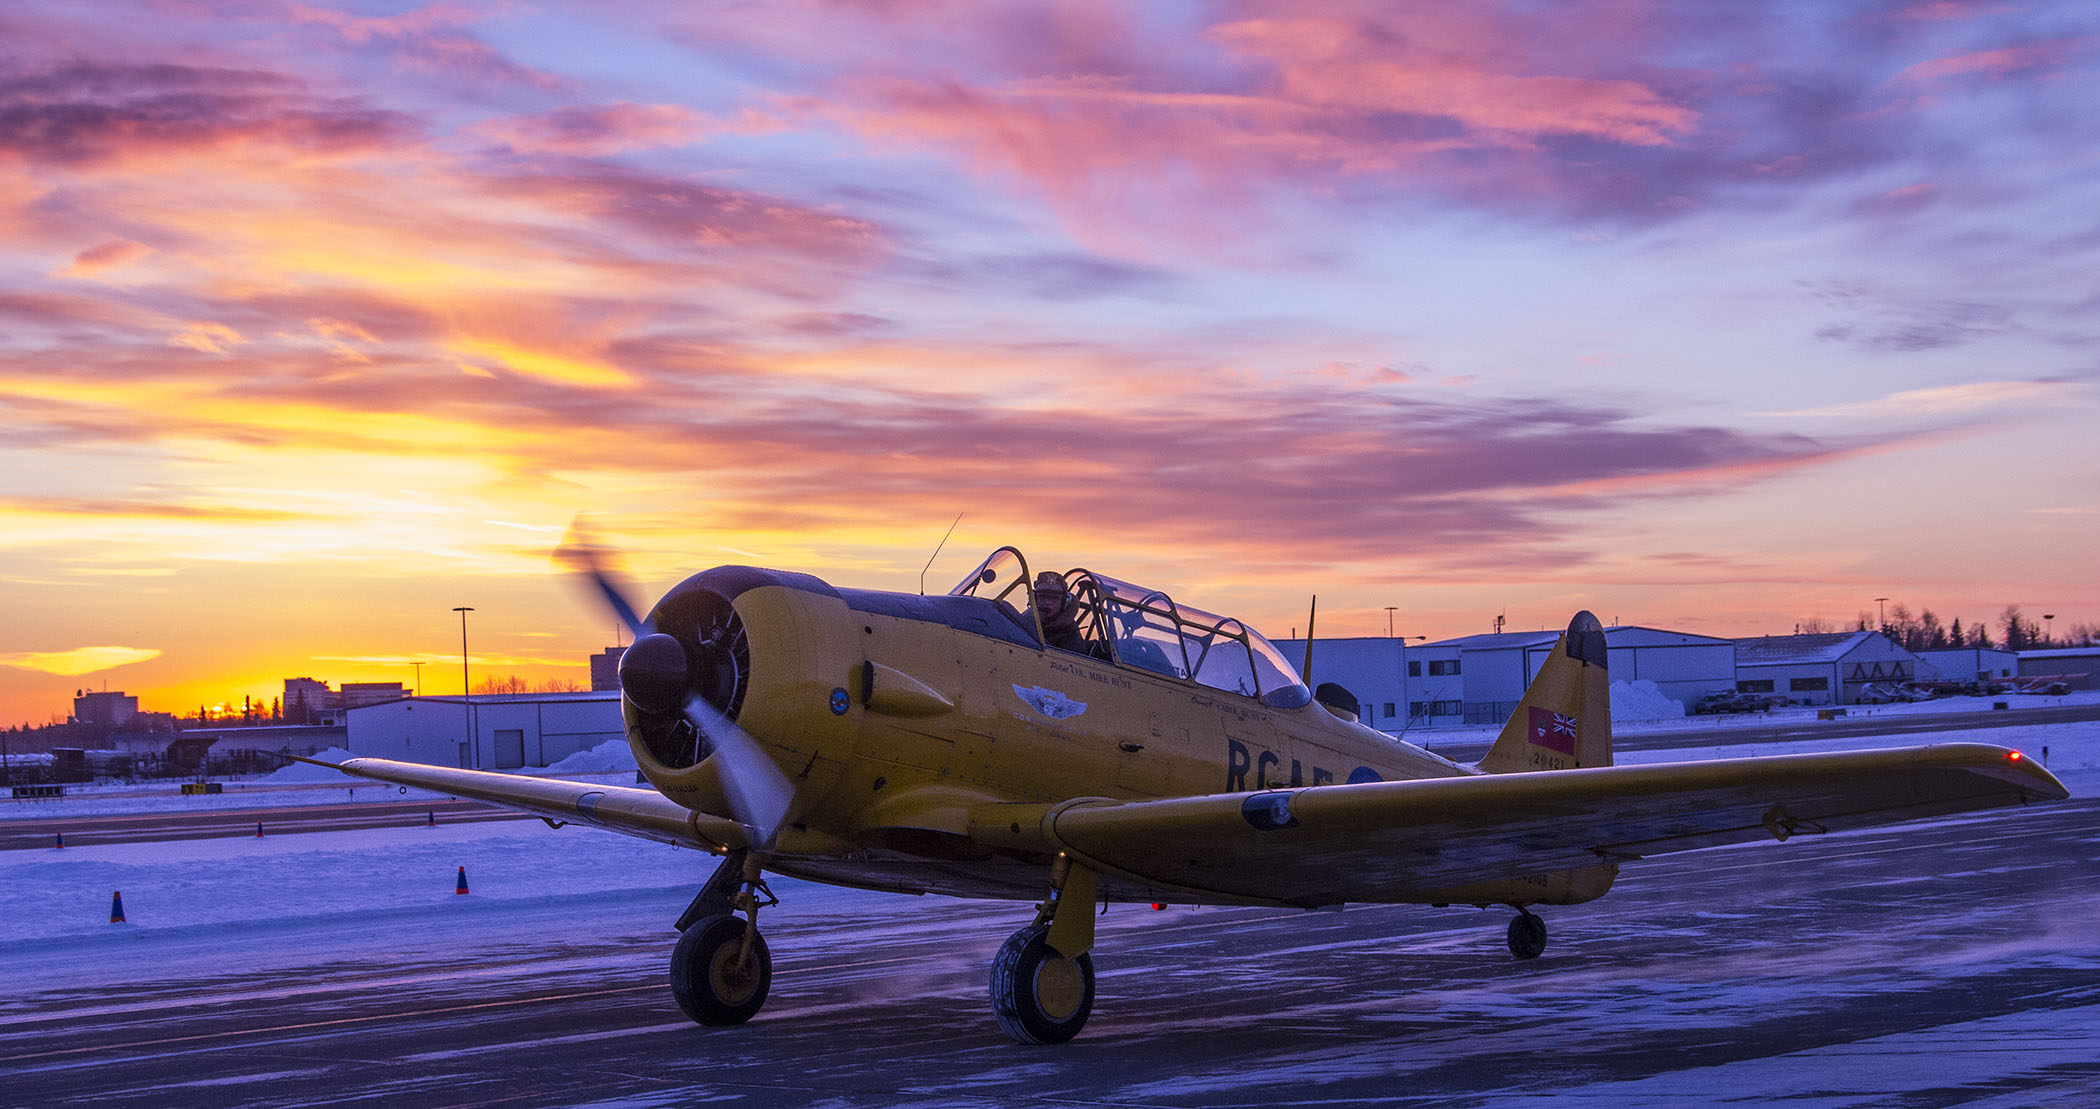 Alaska aviation photography